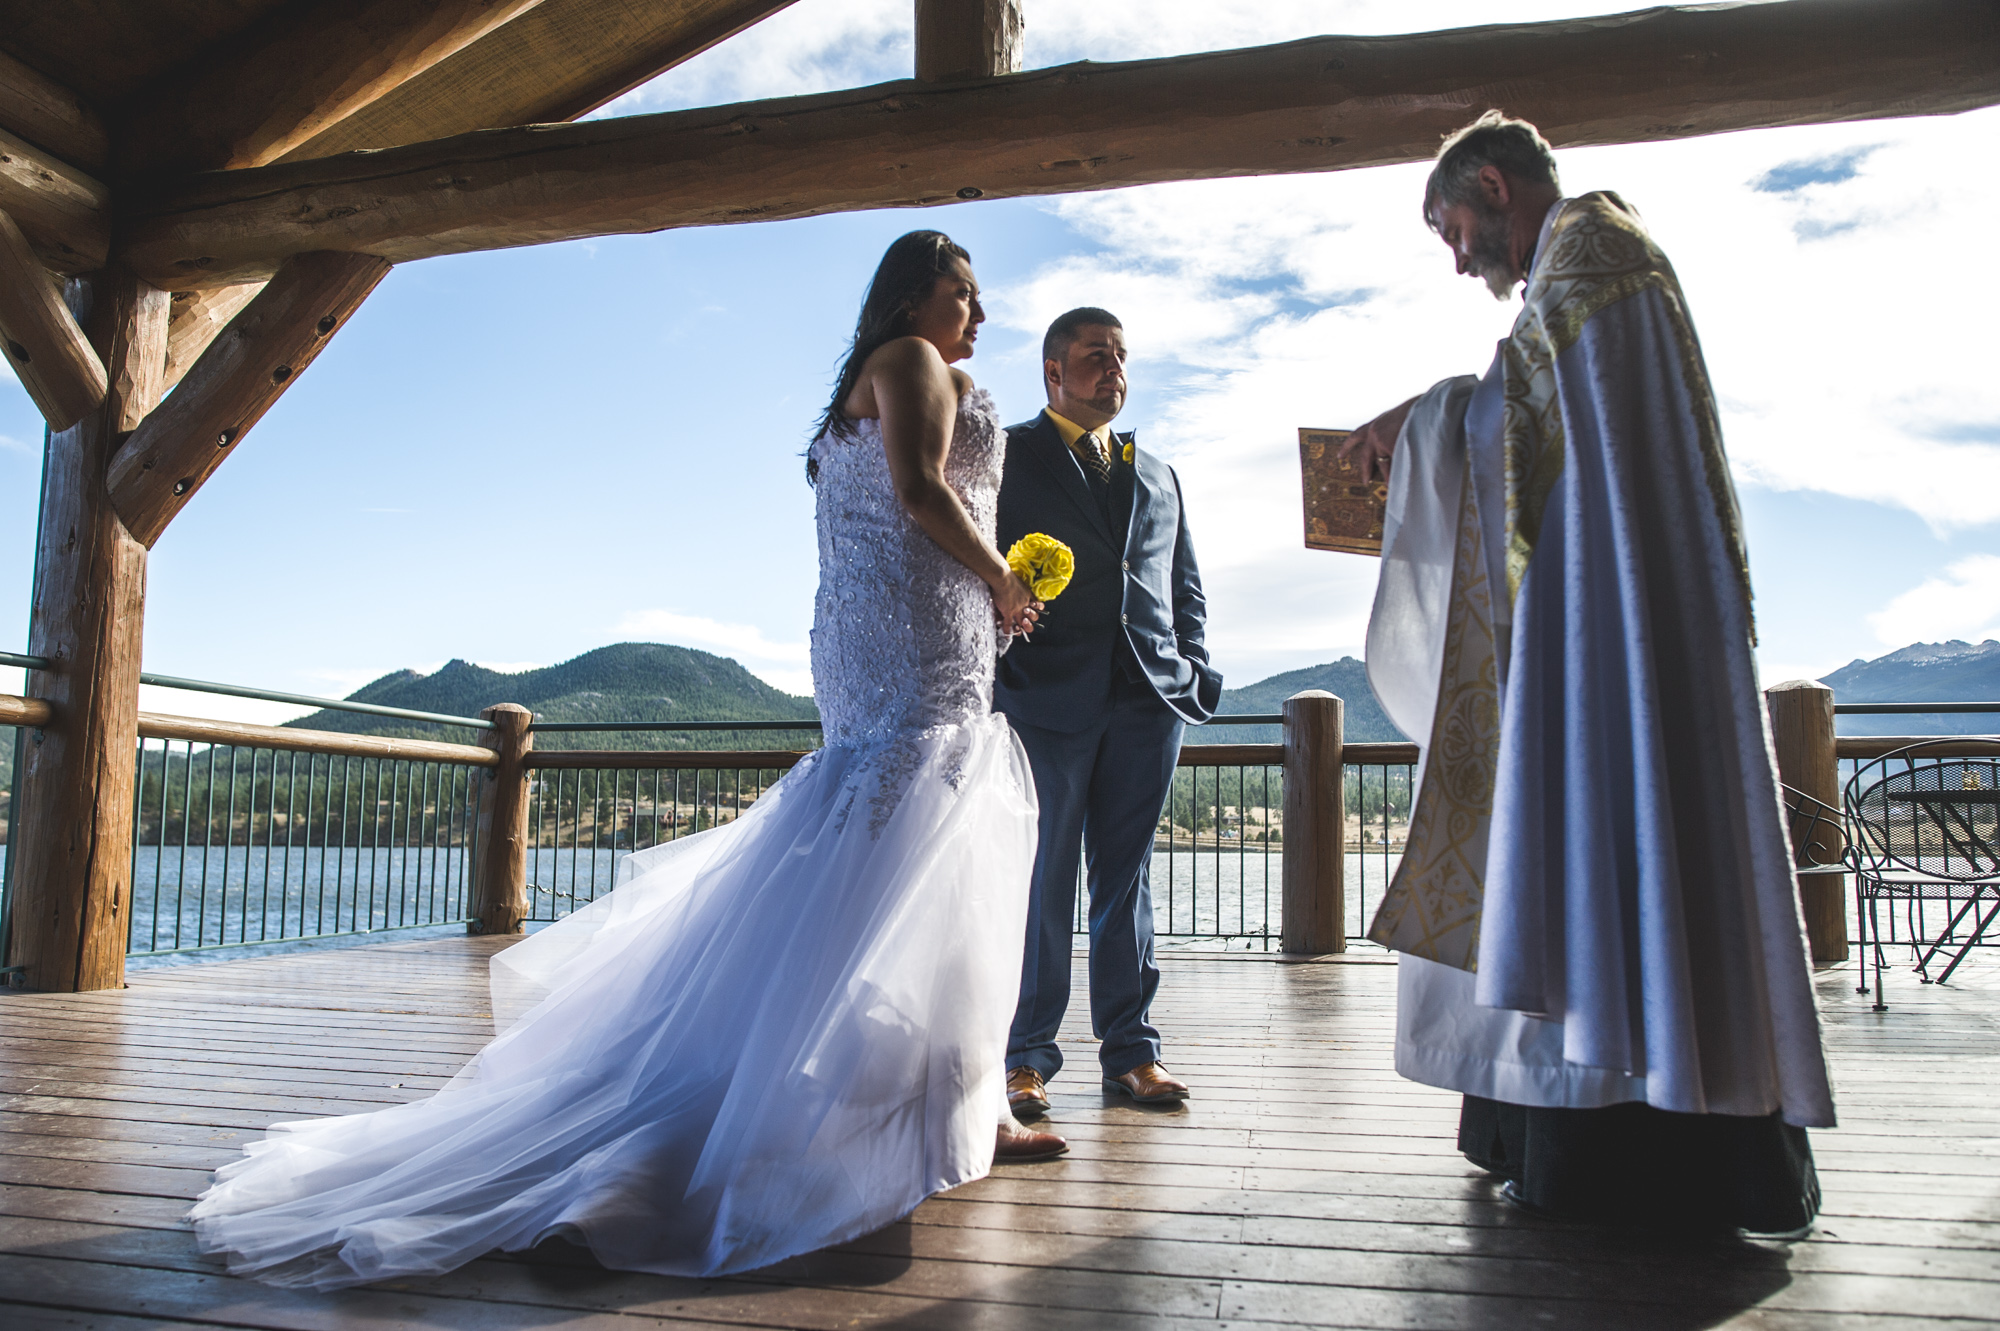 Bride and groom stand on a patio during their wedding ceremony at a resort in Estes Park, Colorado, color